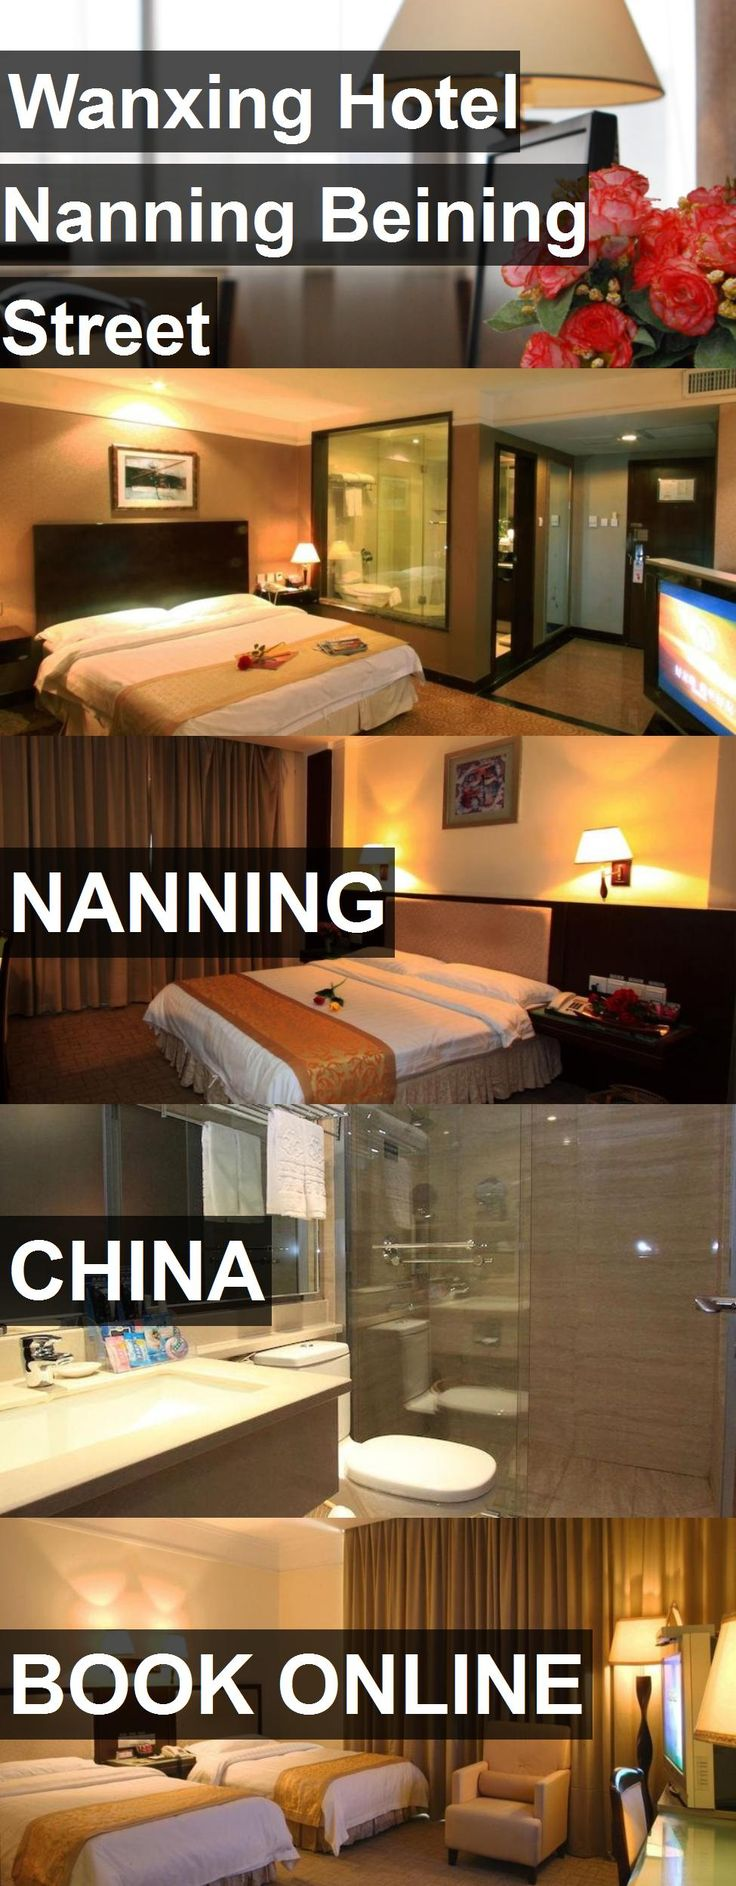 Hotel Wanxing Hotel Nanning Beining Street in Nanning, China. For more information, photos, reviews and best prices please follow the link. #China #Nanning #hotel #travel #vacation